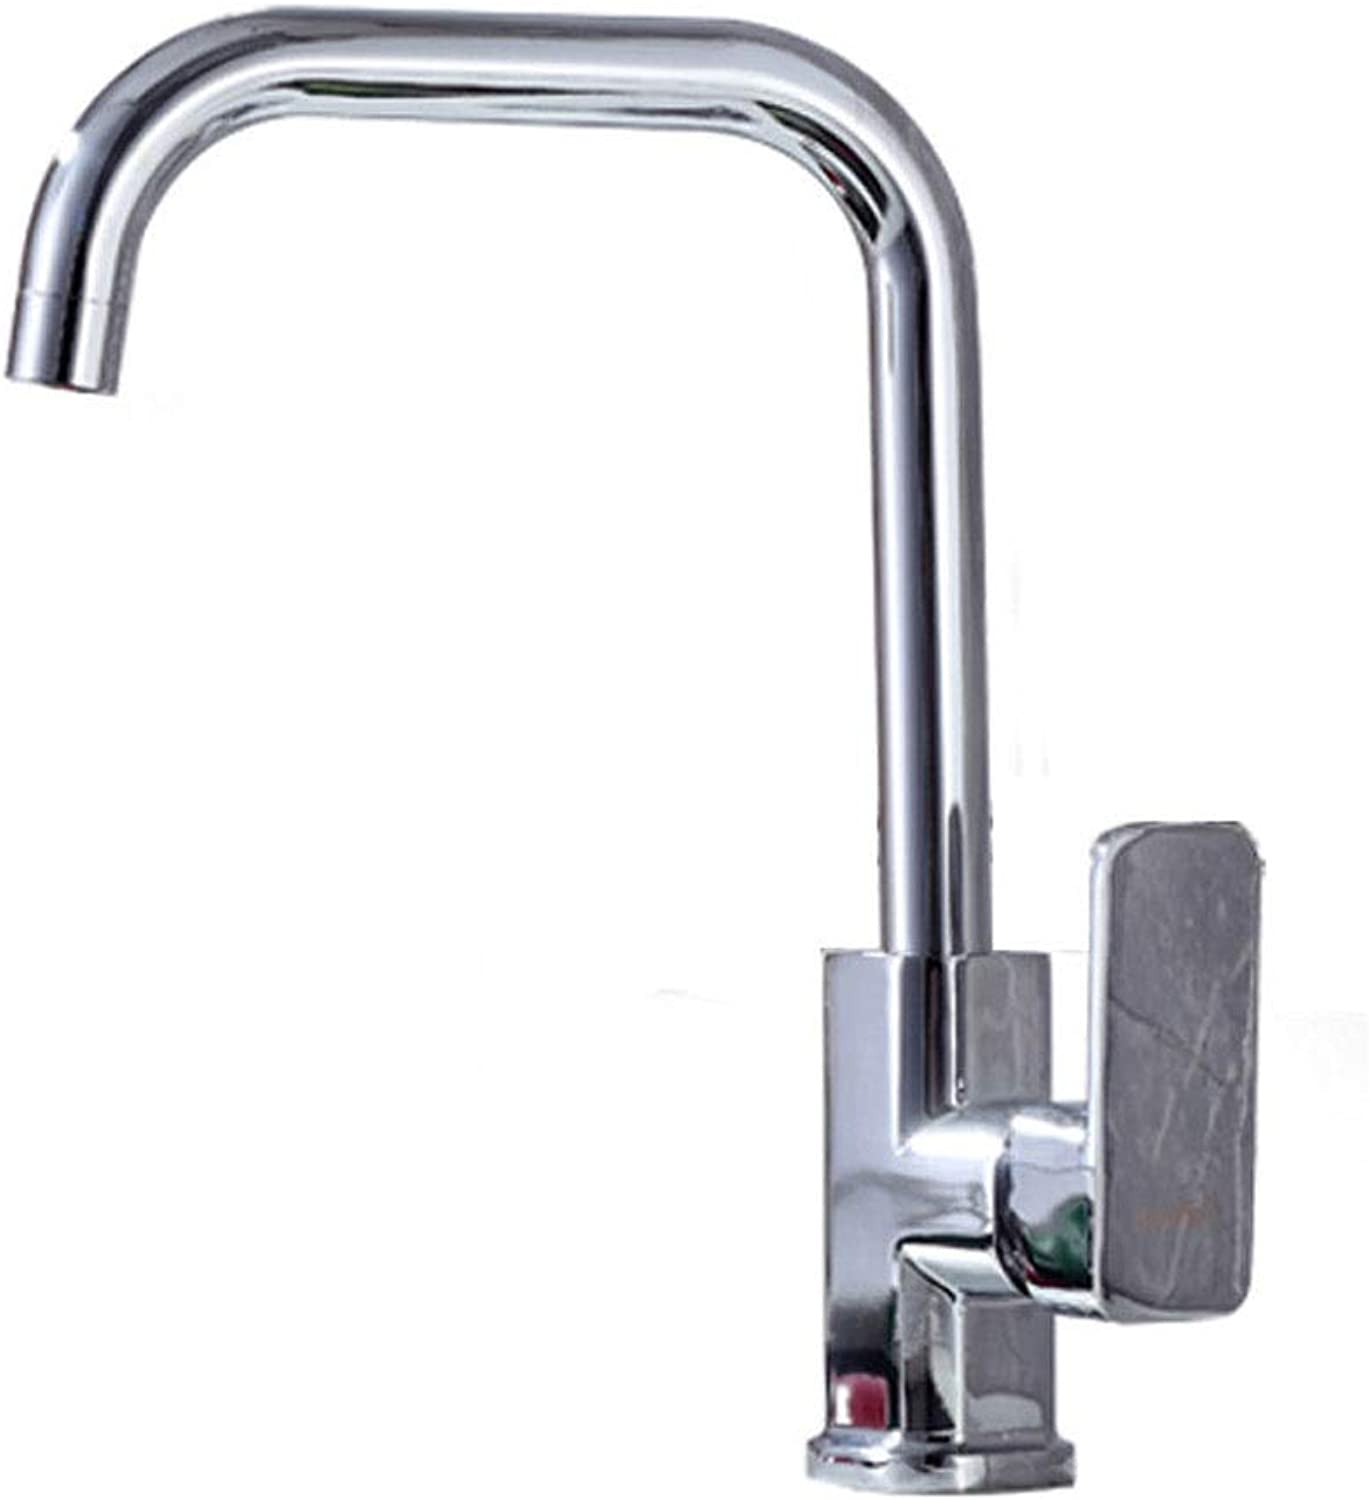 WOOMD Imported Materials Brass Copper Kitchen Deluxe Drinking Water Filter Tap Classic Style Long Reach Chrome Swan Neck Flexible Piston Valve Faucet Ceramic Spool Sitting Adjustable Faucet